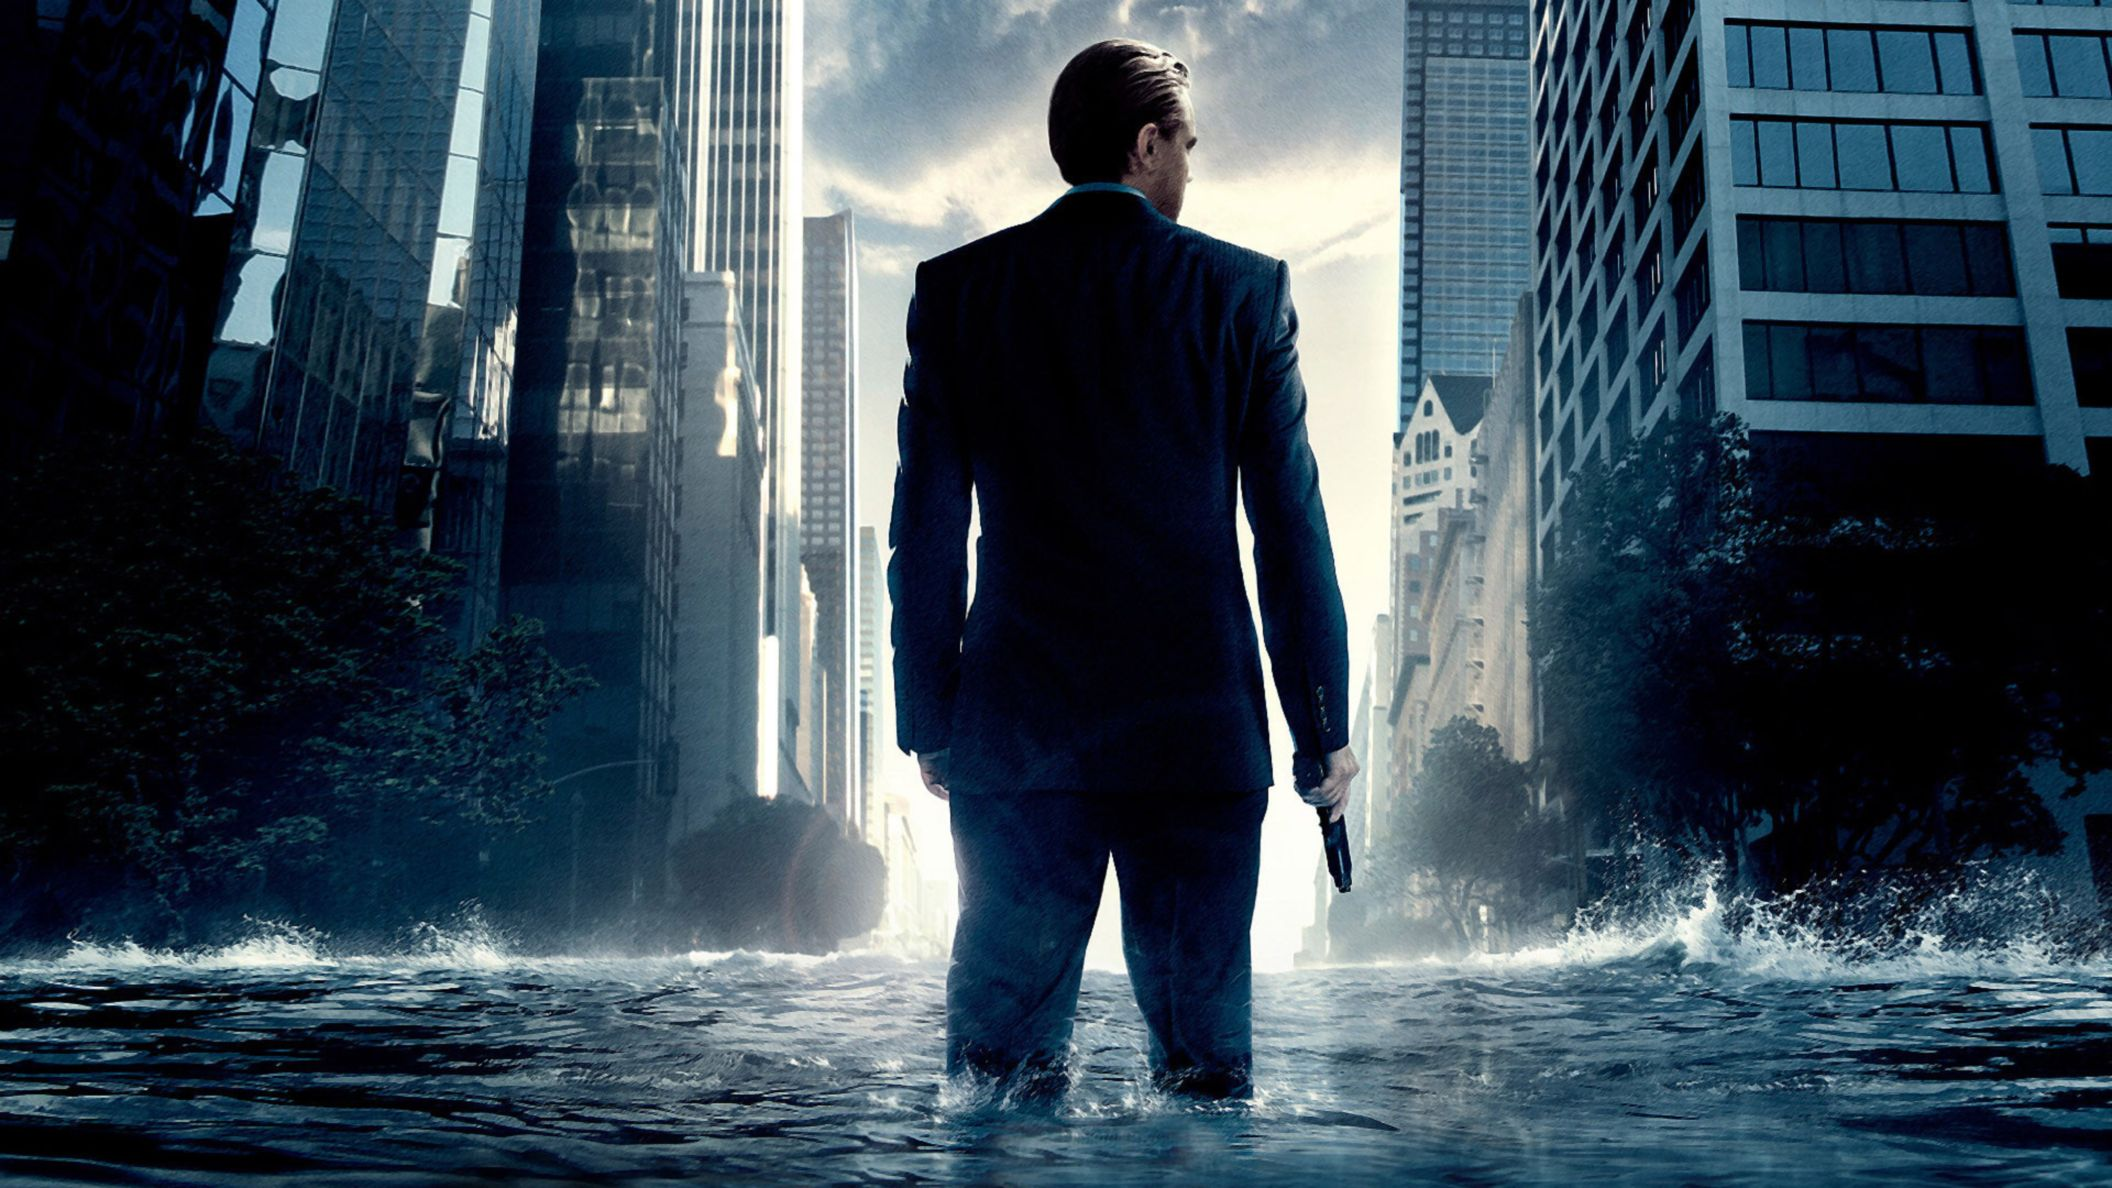 Download free HD Leonardo Dicaprio in Inception HD Wallpaper, image